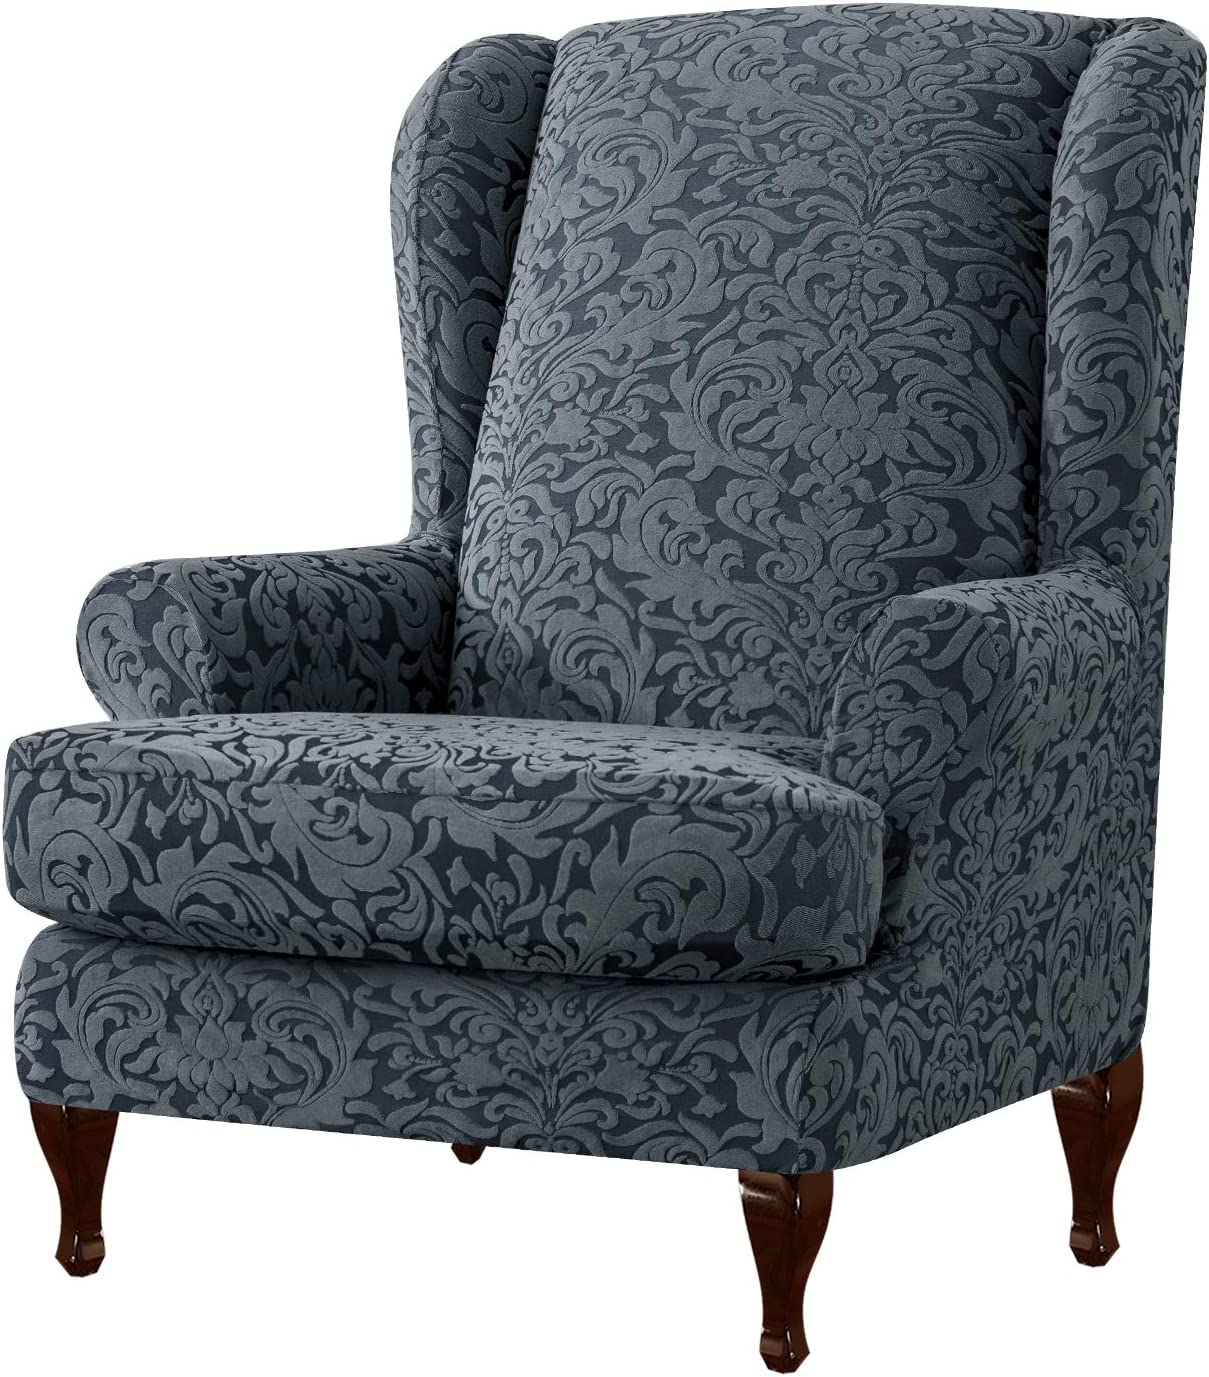 subrtex 2-Pieces Jacquard Damask Stretch Wingback Chairs 2021 OFFicial Arm Cha